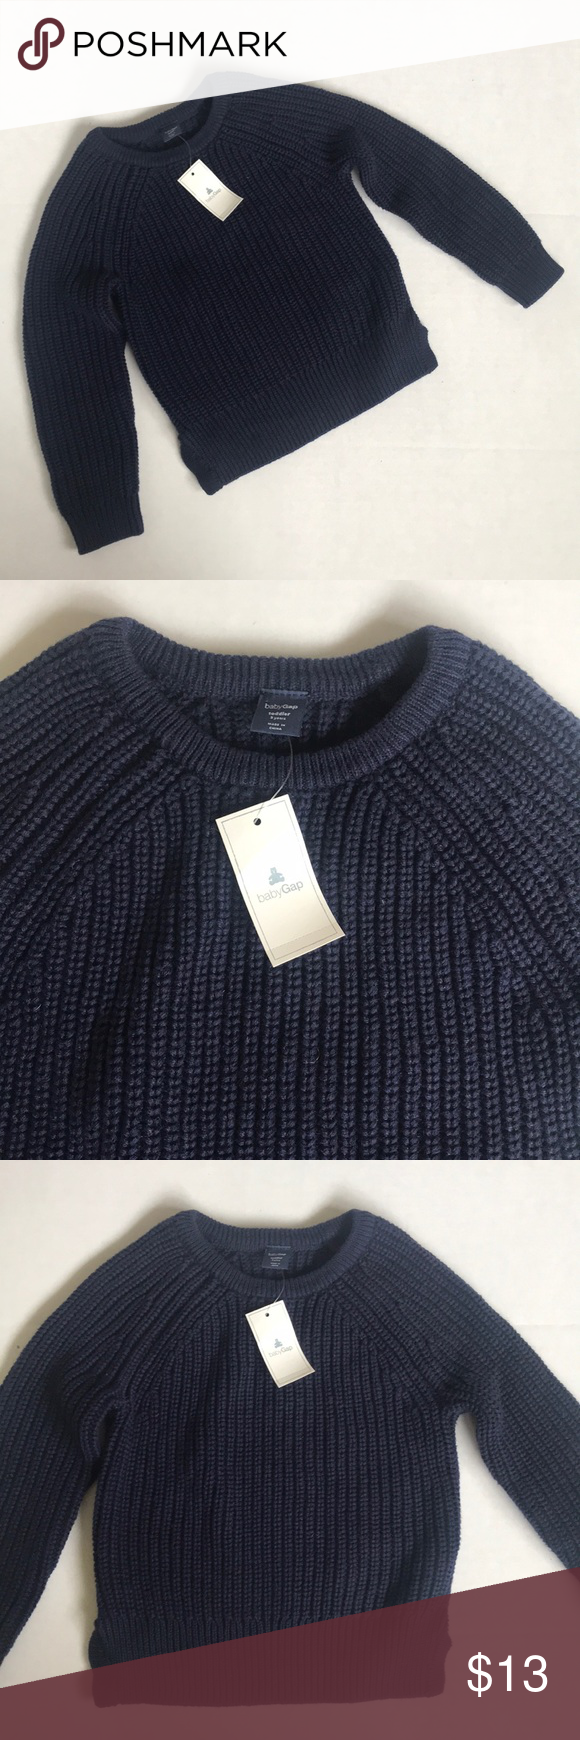 60191c3b00ad NWT Baby Gap Knit Sweater NWT knit navy blue pullover sweater by ...